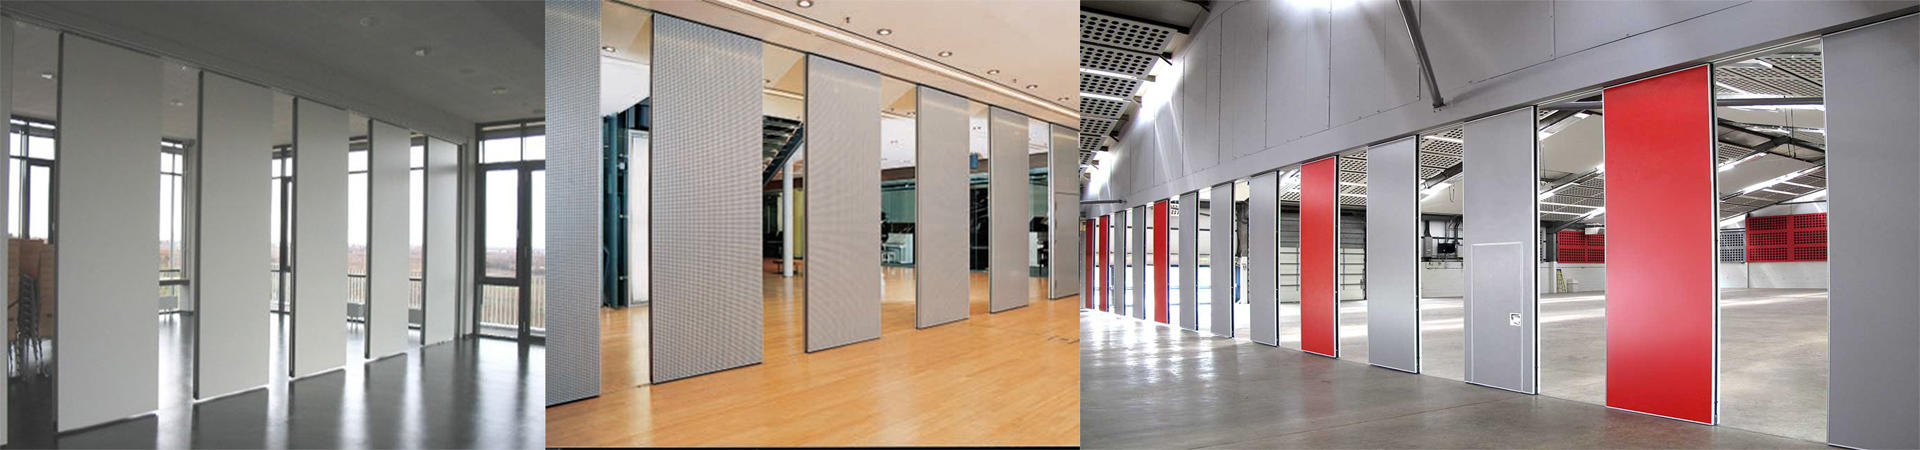 MDF Folding Partition Moveable Walls Panels Operable Soundproof Partitions for Office-EBUNGE